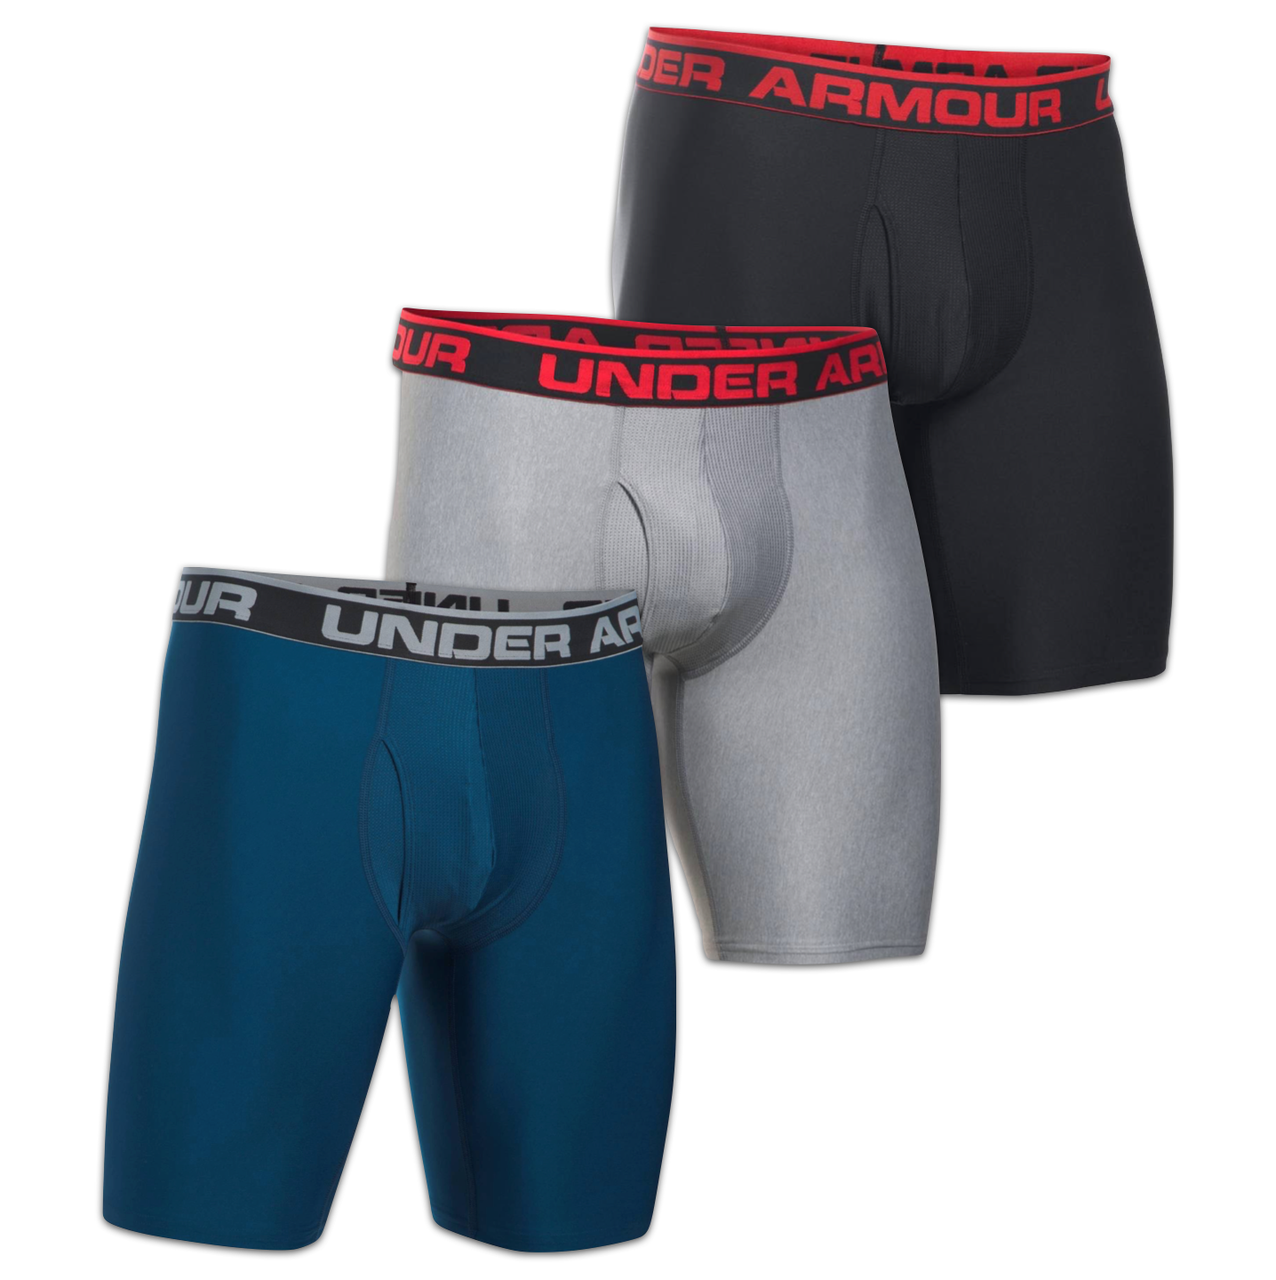 5ab7c73ccffc Under Armour 1277240 Mens Original Series 9